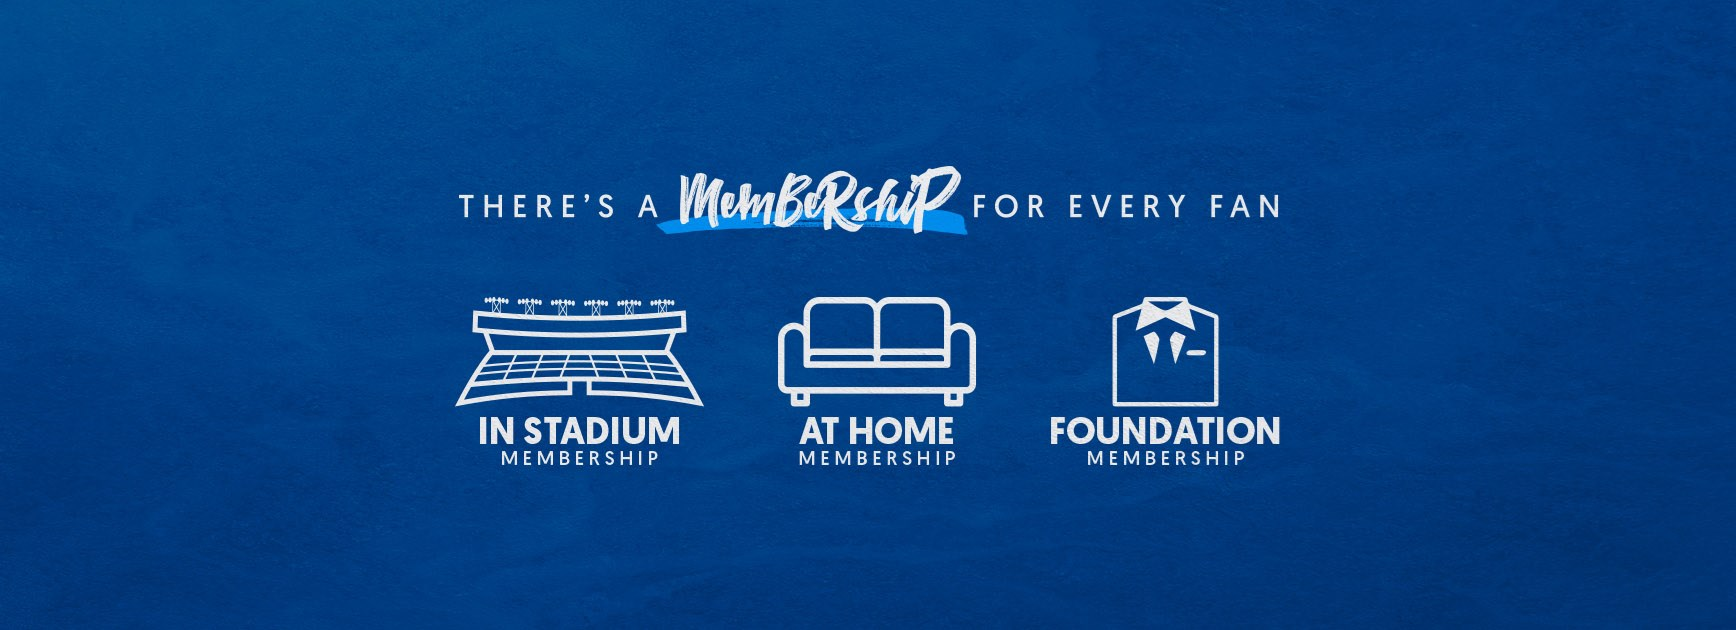 In 2021, there's a Membership for every fan!